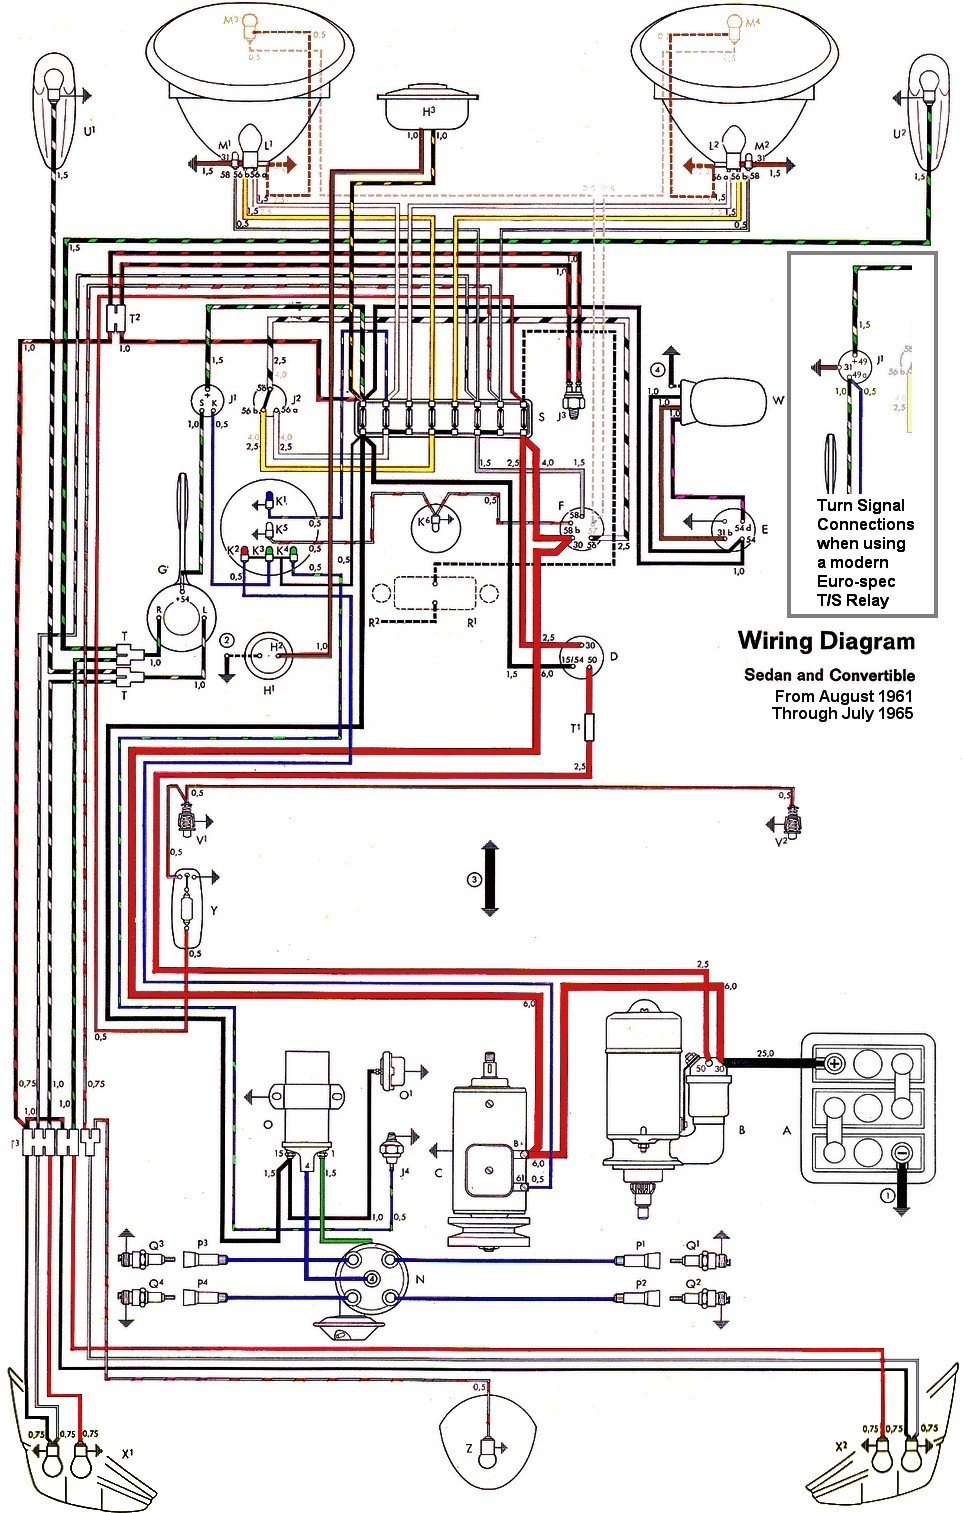 bug_62 65withinset vw beetle wiring diagram 71 wiring diagrams instruction 2001 vw beetle wiring diagram at mifinder.co